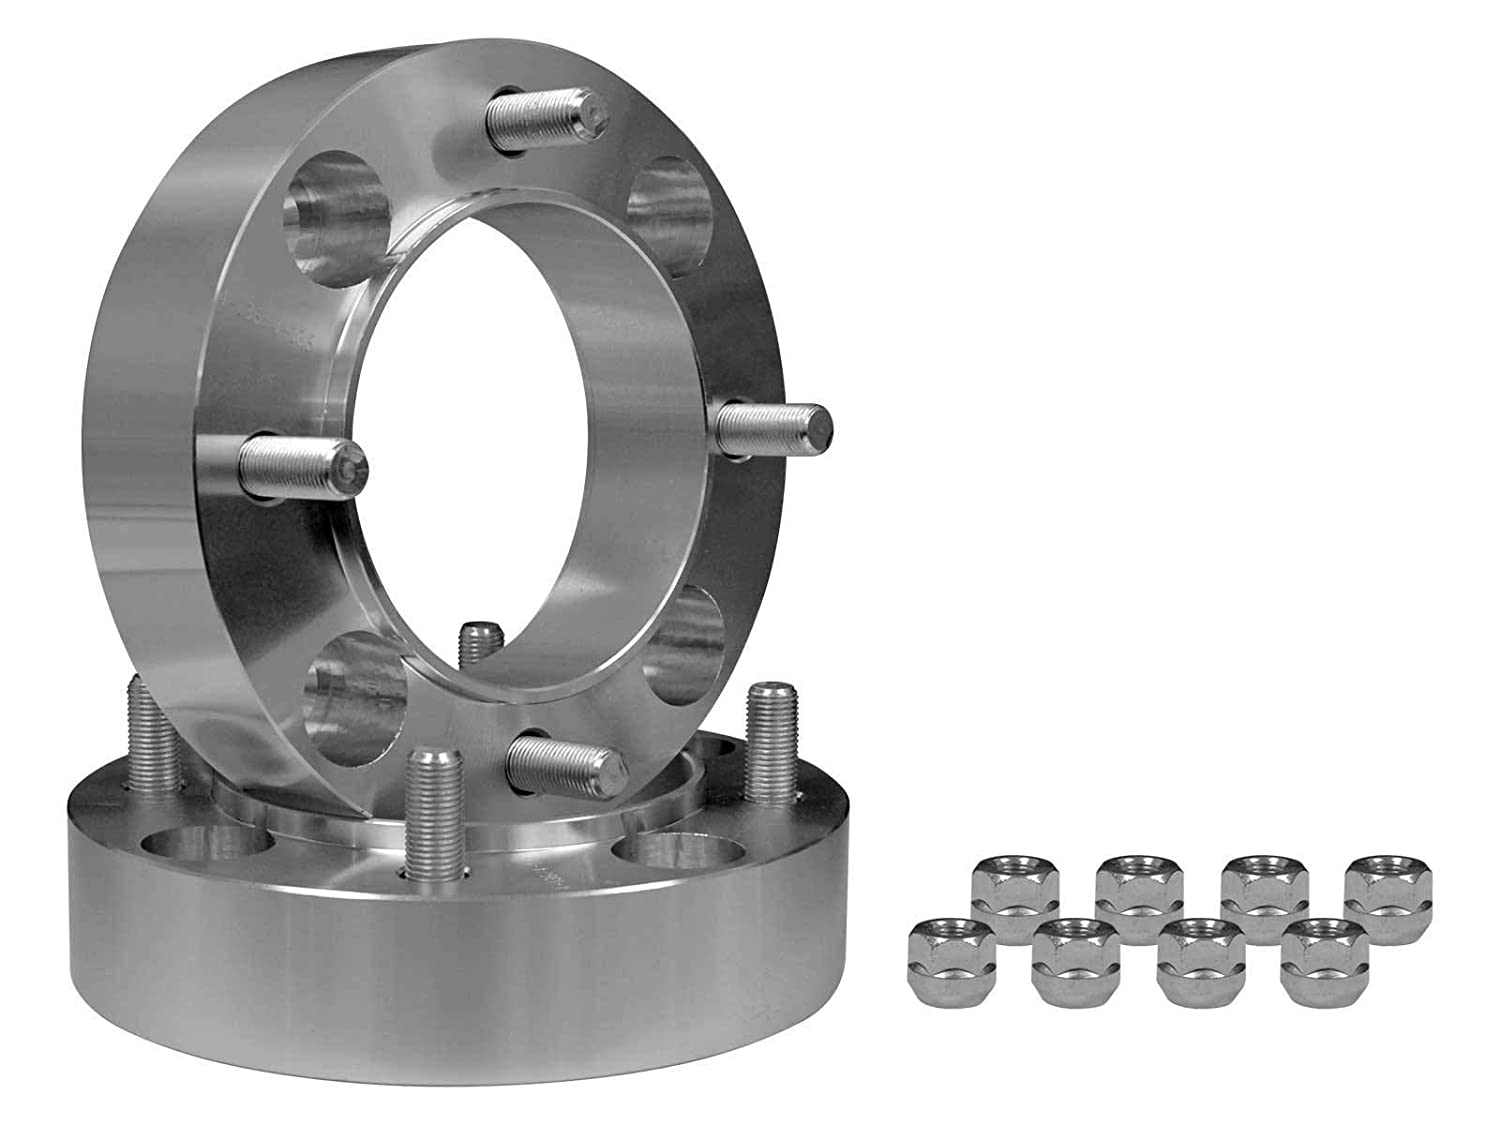 Wiseco 3622XC Ring Set for 92.00mm Cylinder Bore